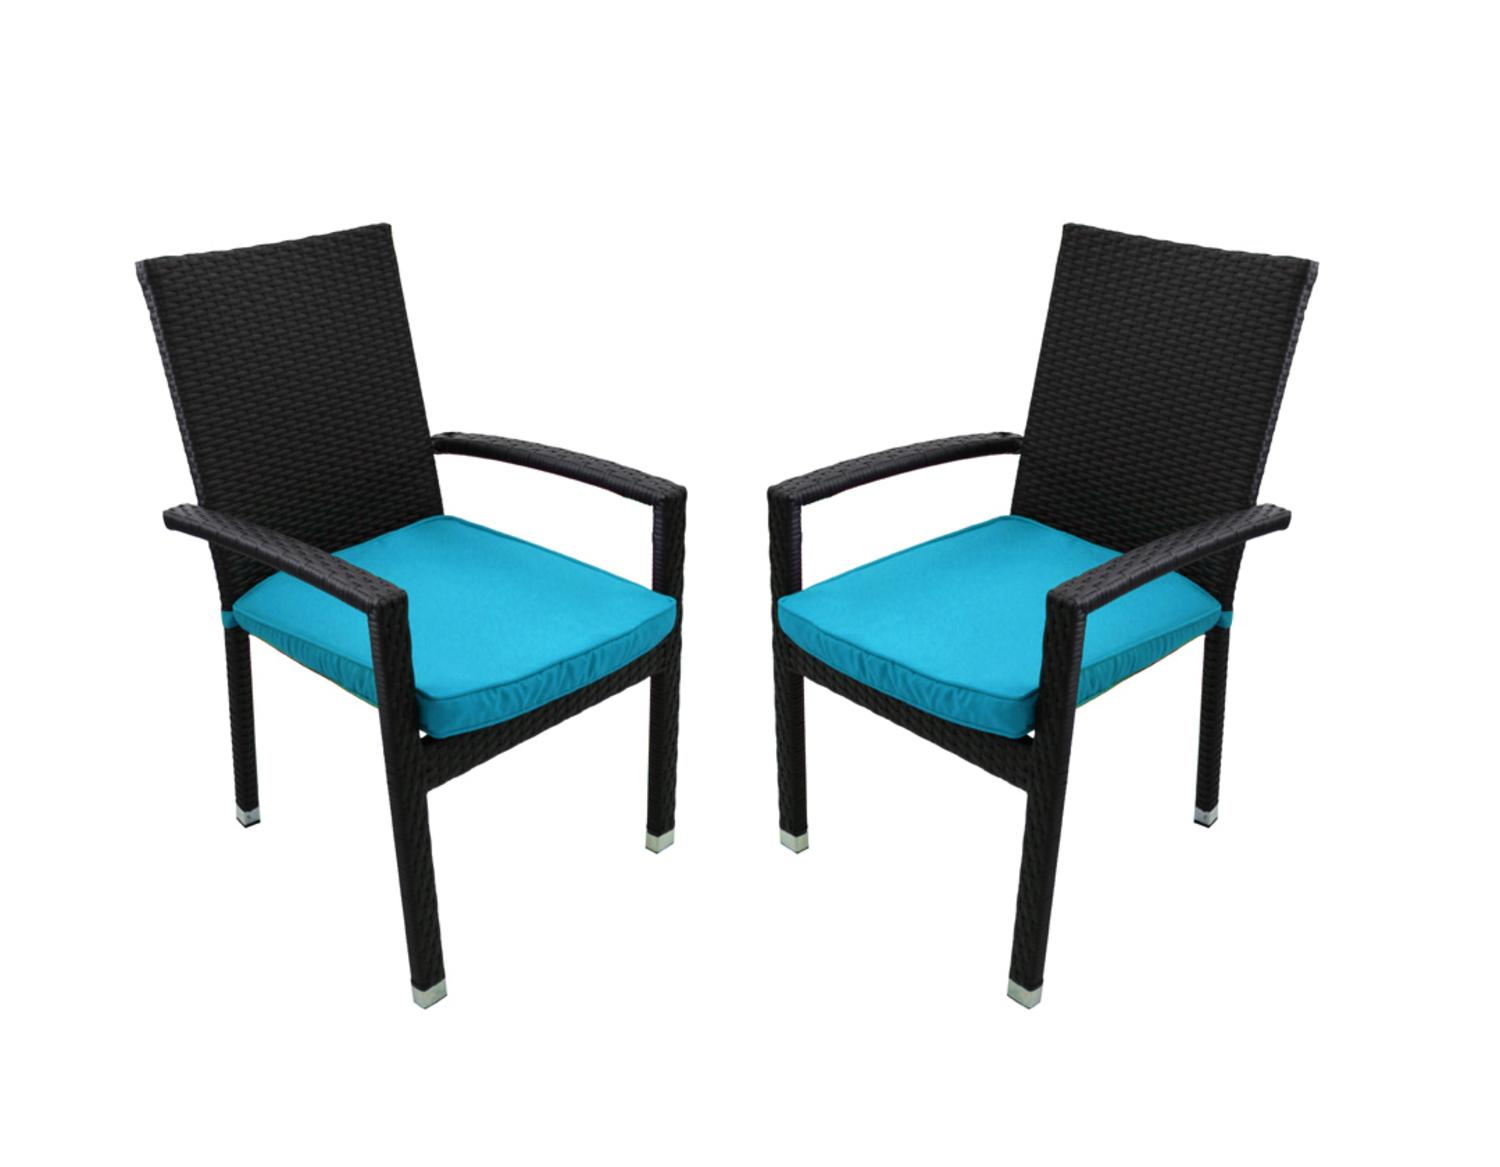 set of 2 black resin wicker outdoor patio furniture dining chairs blue cushions walmart com